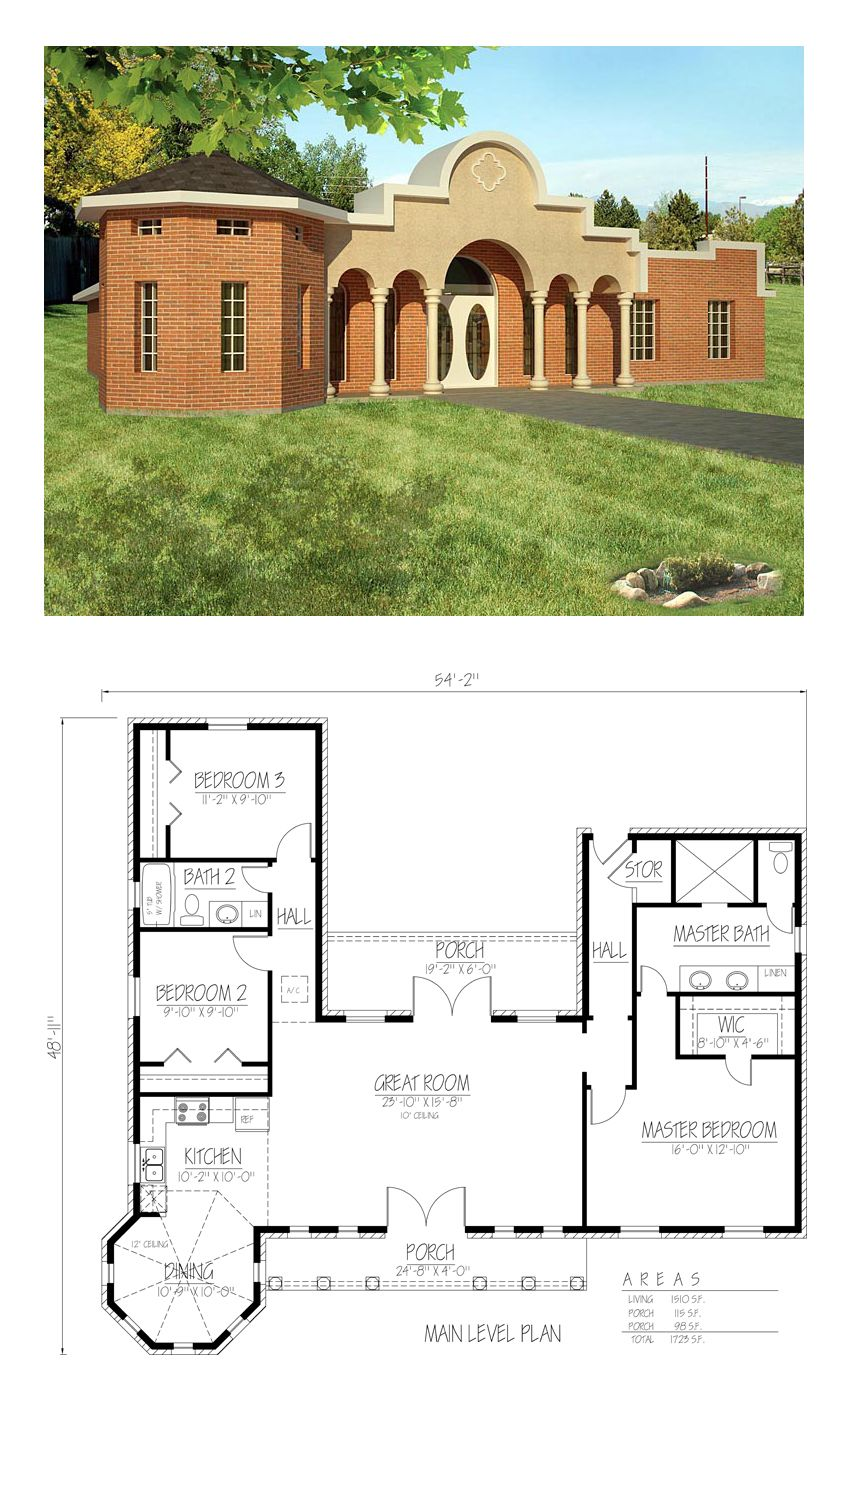 Southwest Style House Plan 71924 With 3 Bed 2 Bath Mediterranean House Plans Coastal House Plans Southwest House